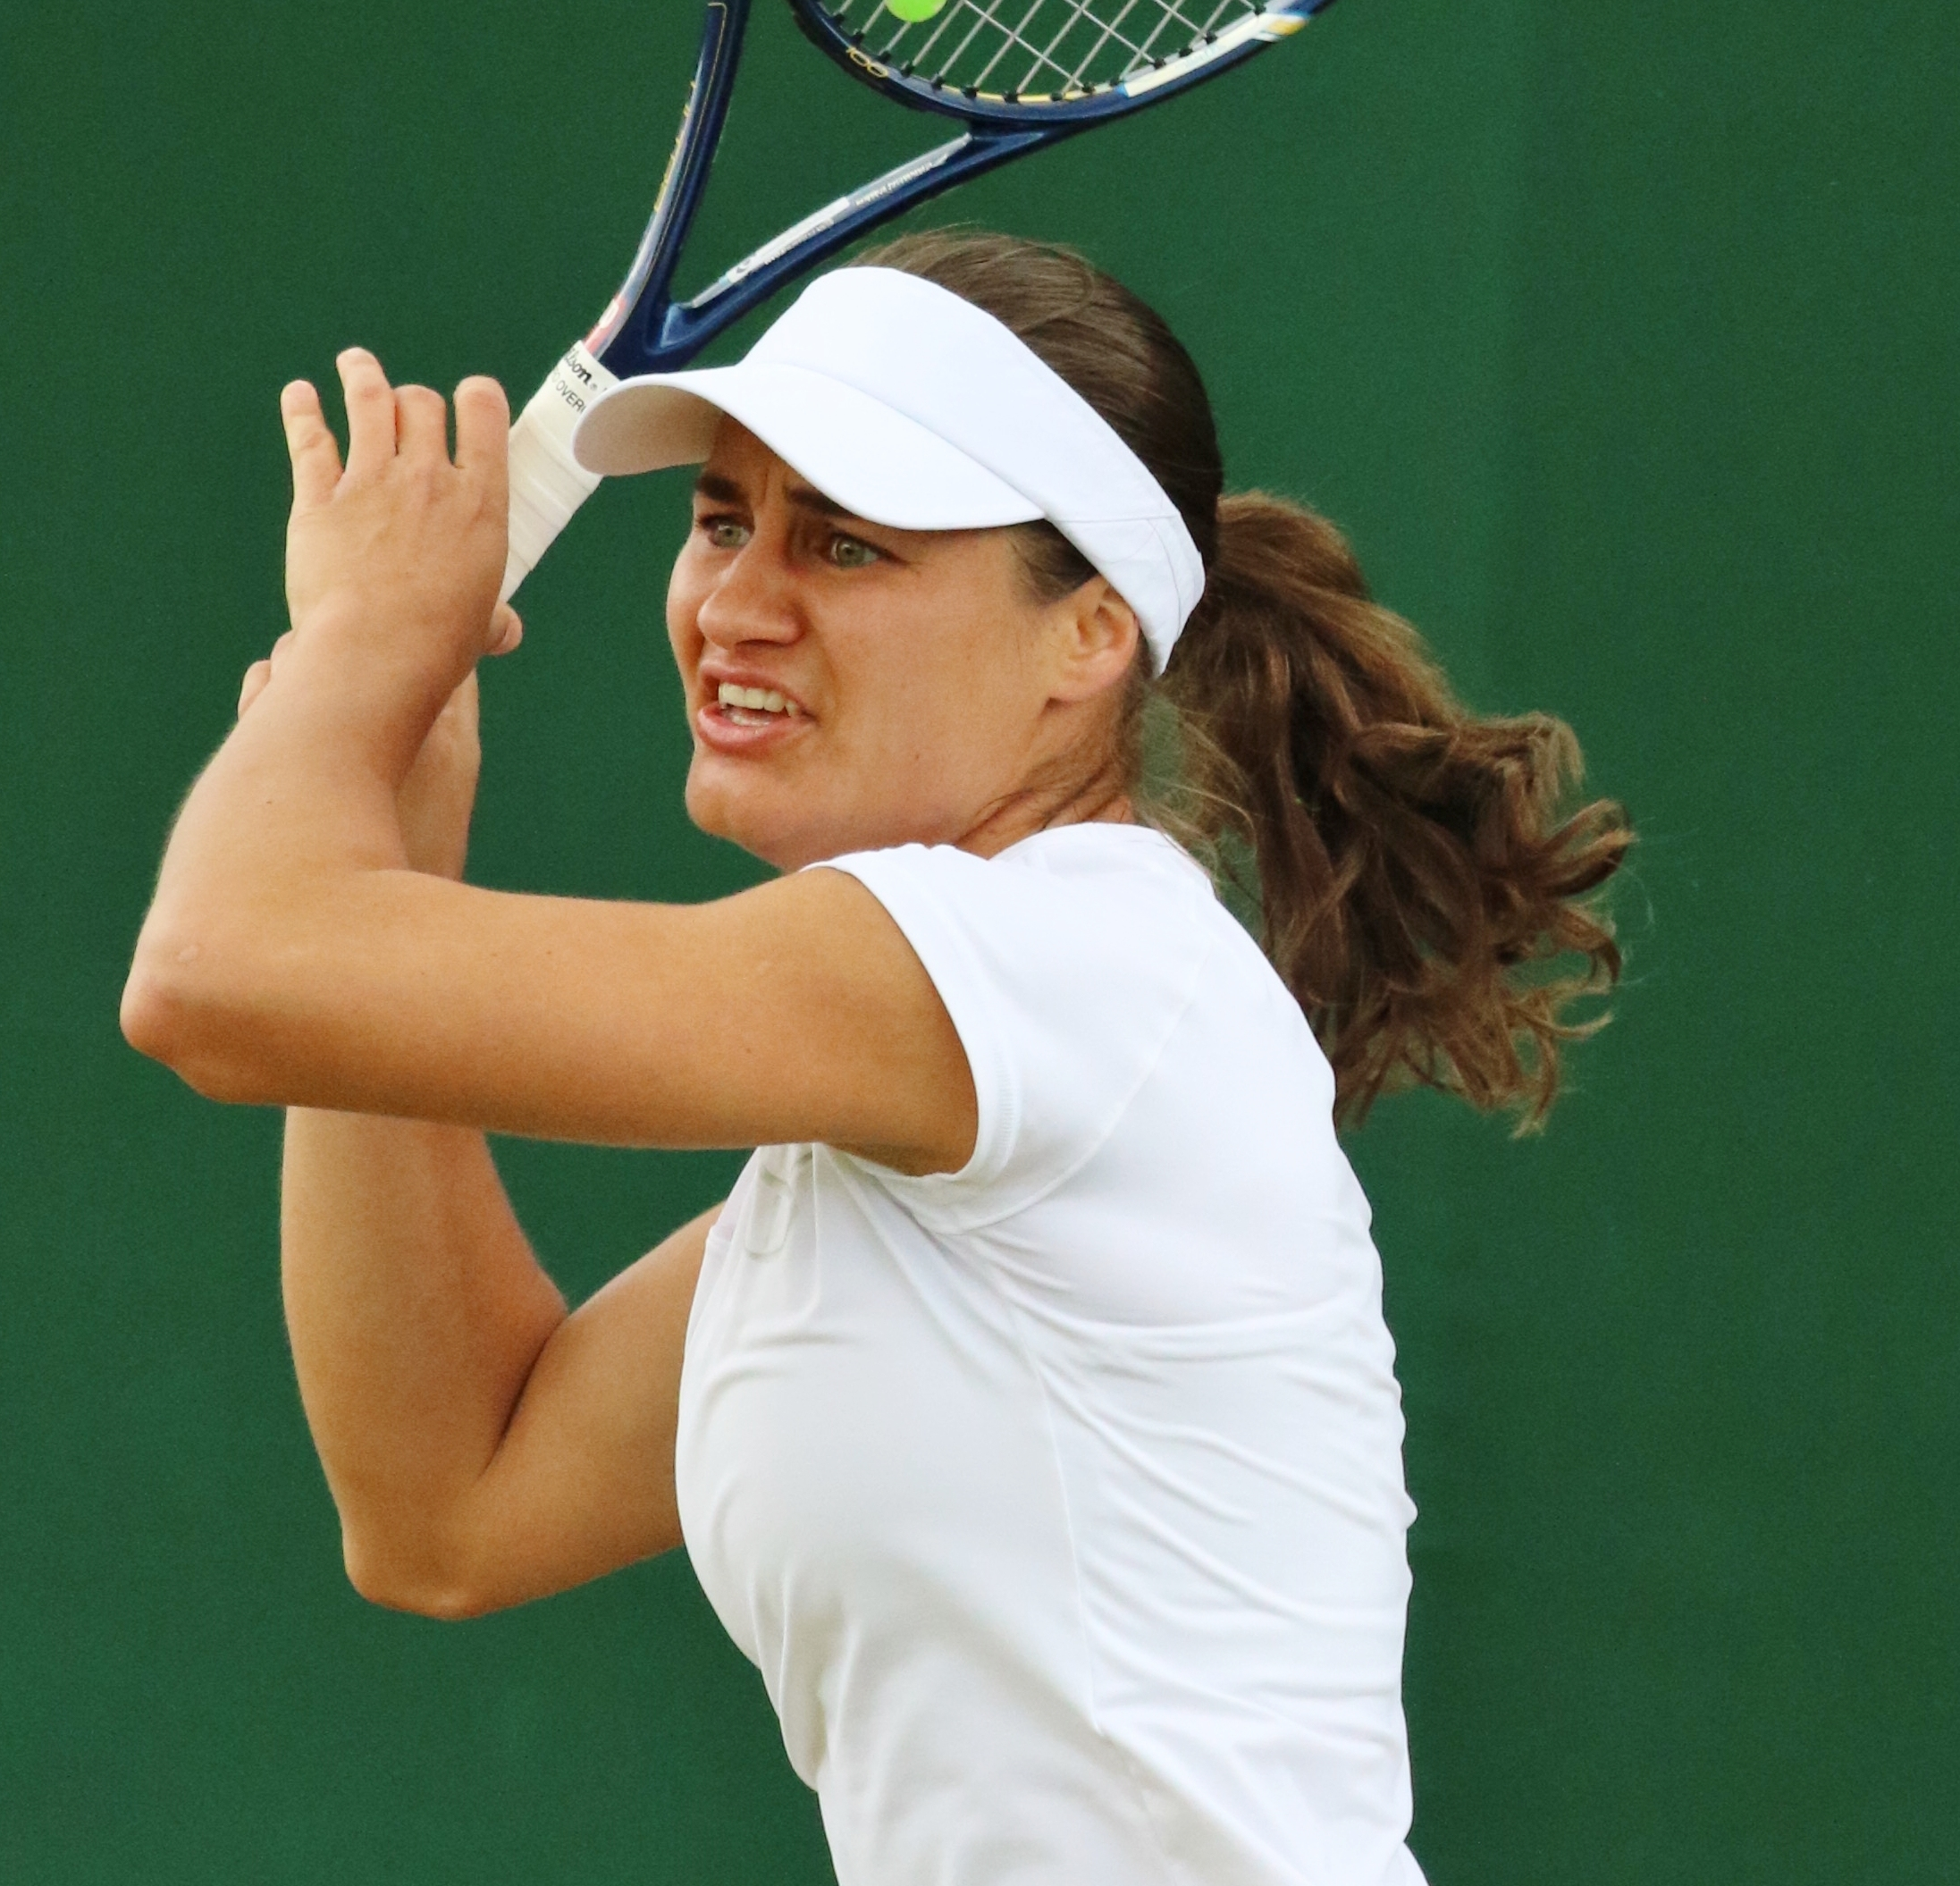 The 30-year old daughter of father (?) and mother(?) Monica Niculescu in 2018 photo. Monica Niculescu earned a  million dollar salary - leaving the net worth at 4.3 million in 2018